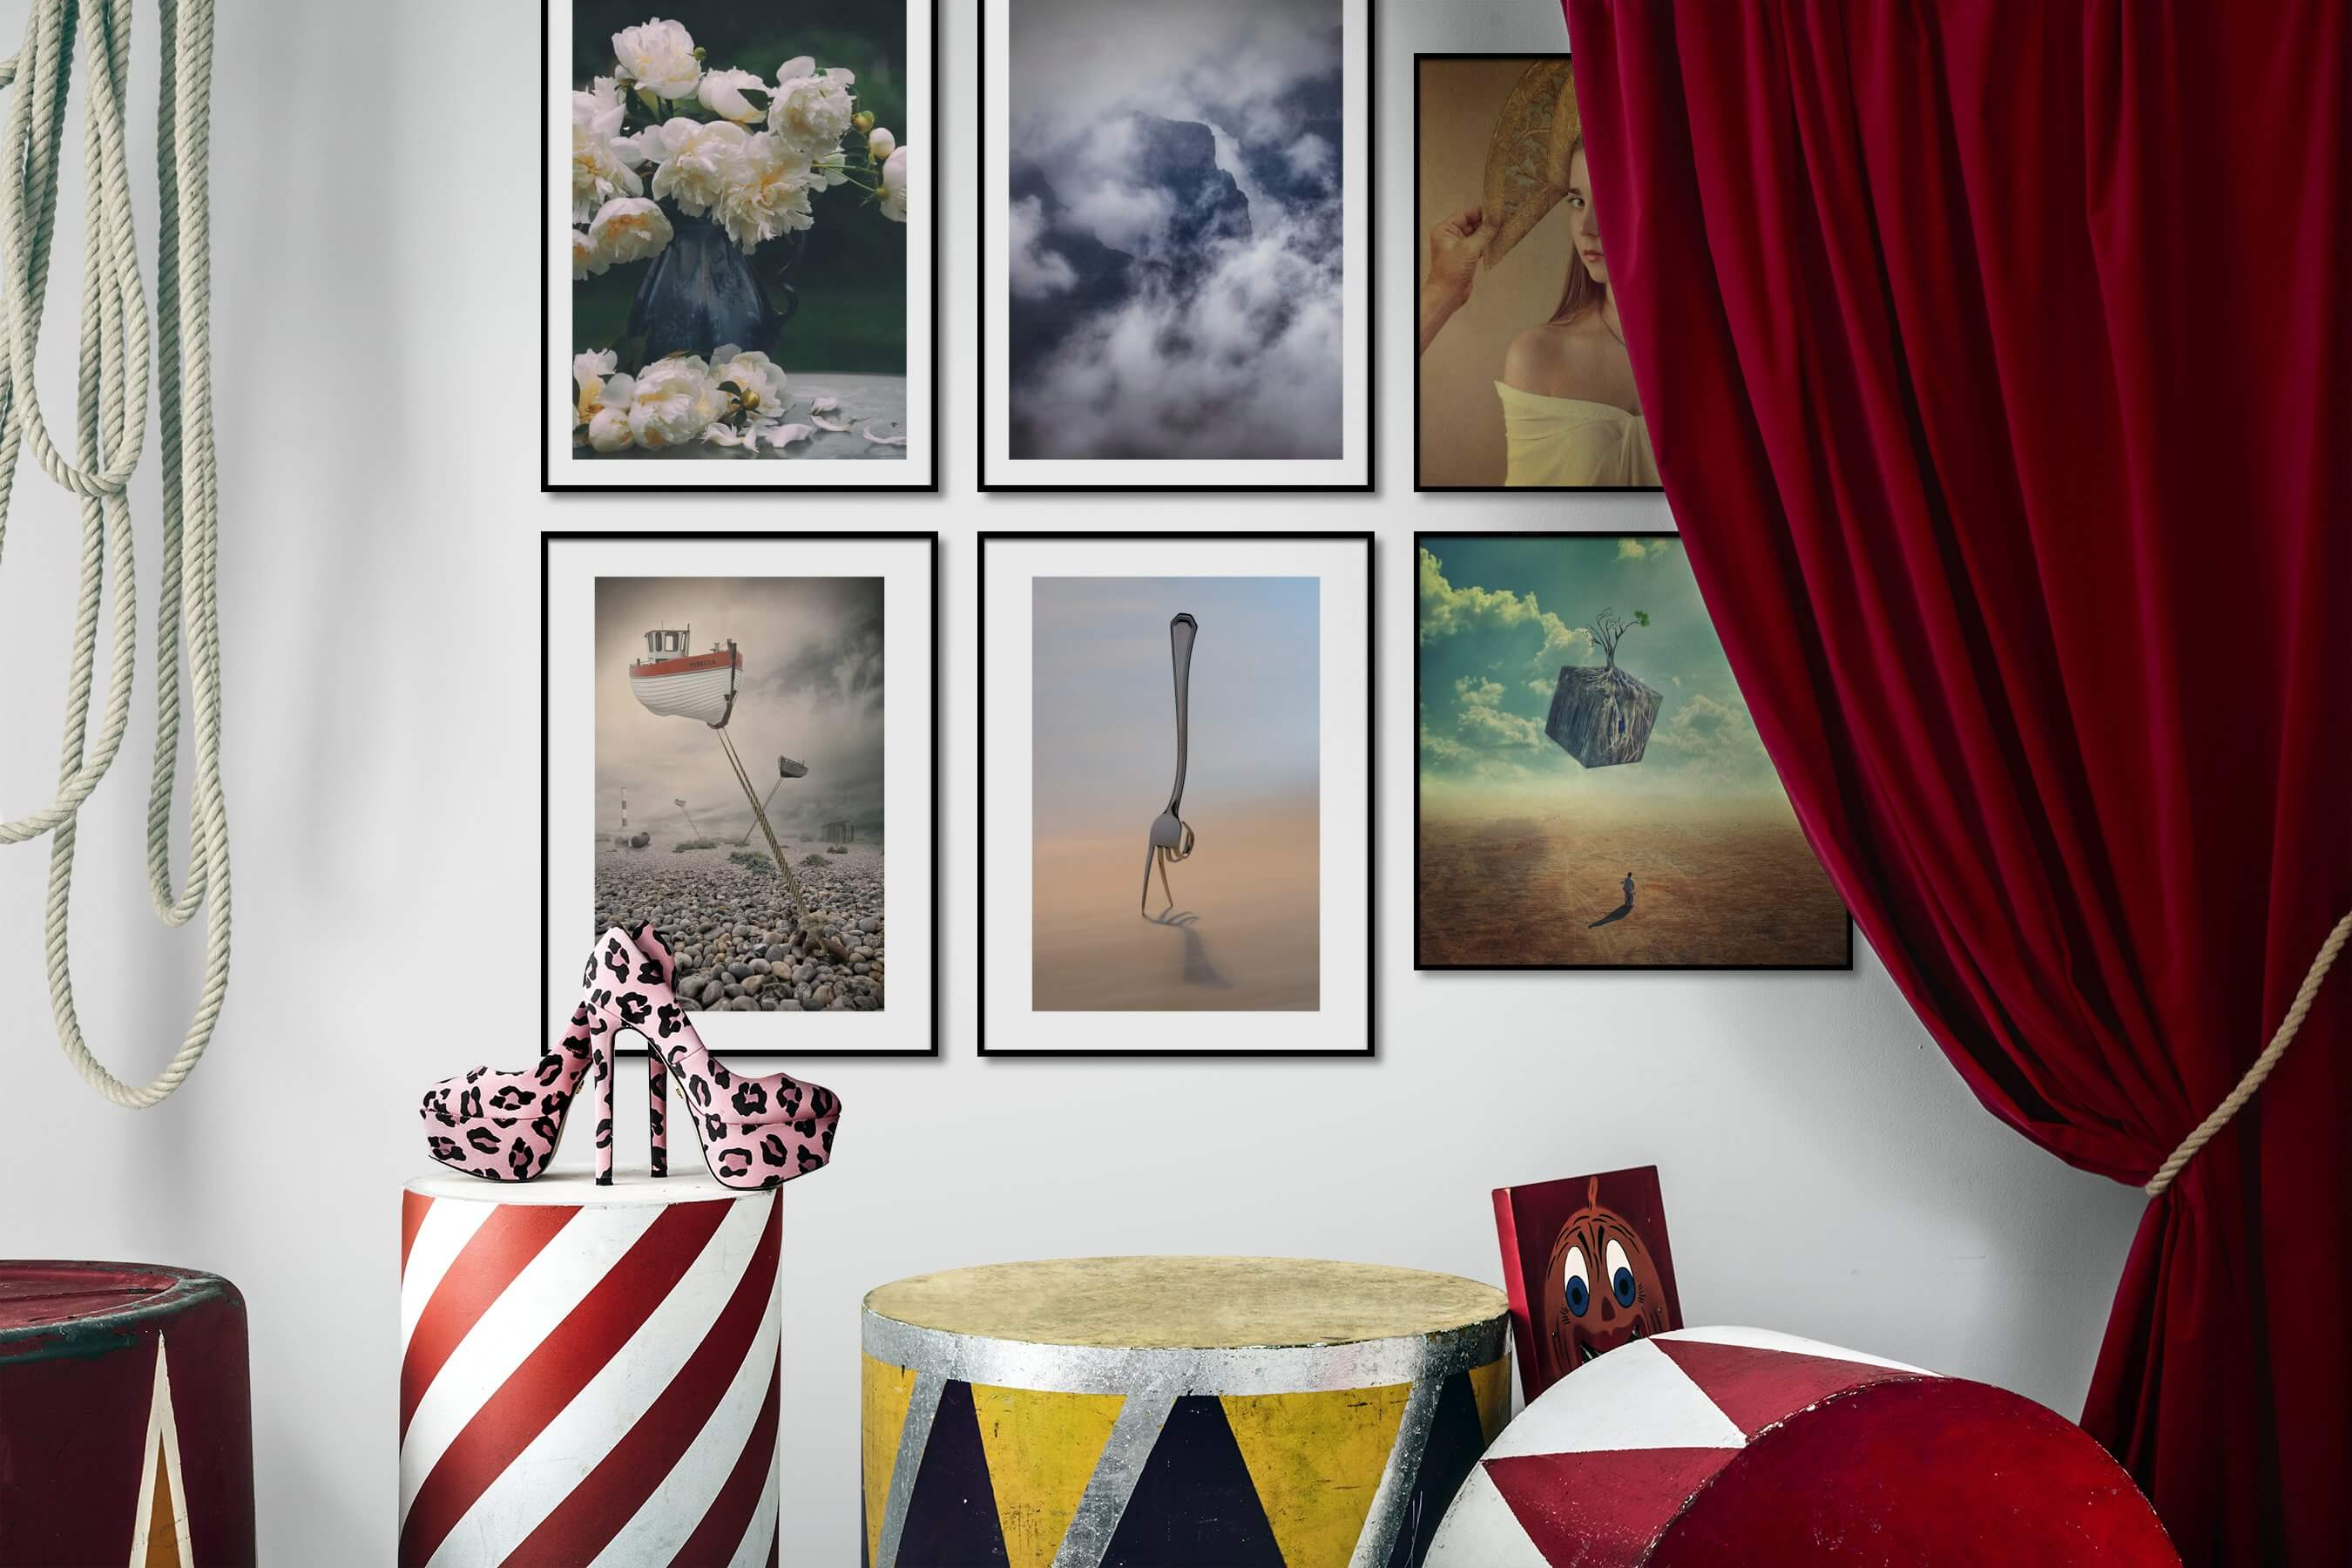 Gallery wall idea with six framed pictures arranged on a wall depicting Flowers & Plants, For the Moderate, Nature, Mindfulness, Artsy, For the Minimalist, Fashion & Beauty, and Vintage